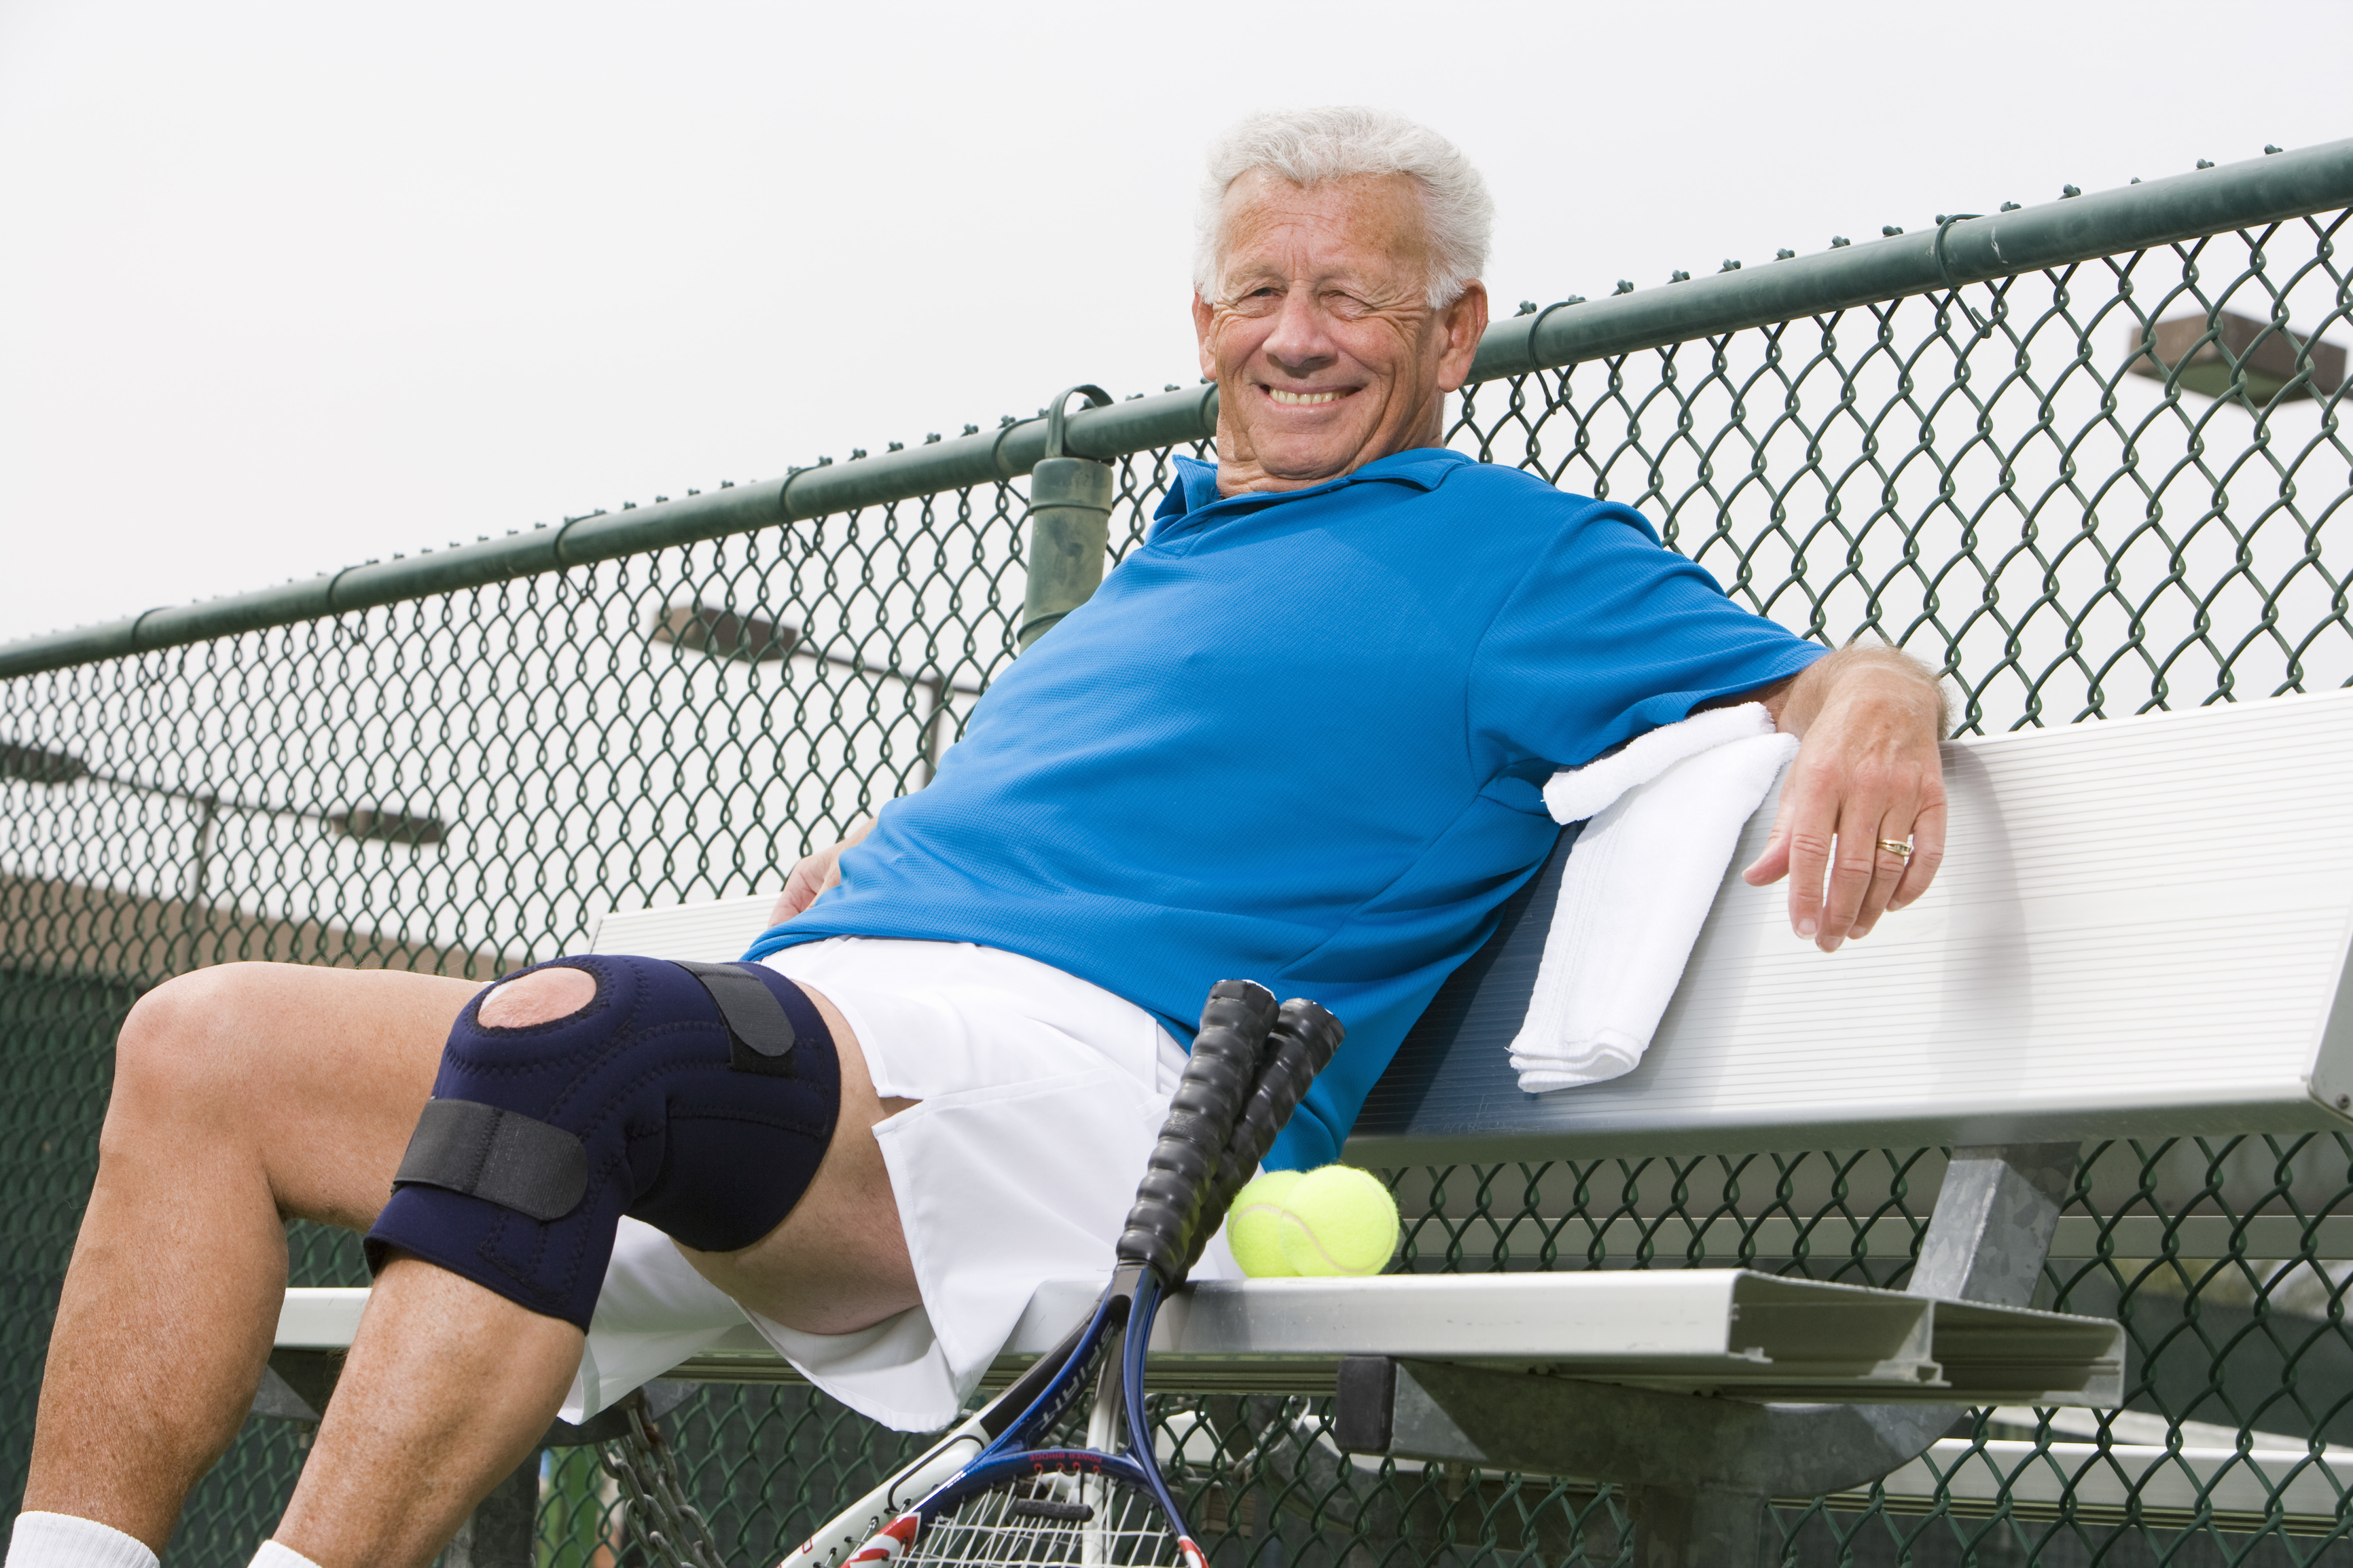 senior-tennis-player-relaxing-on-bench-29652389